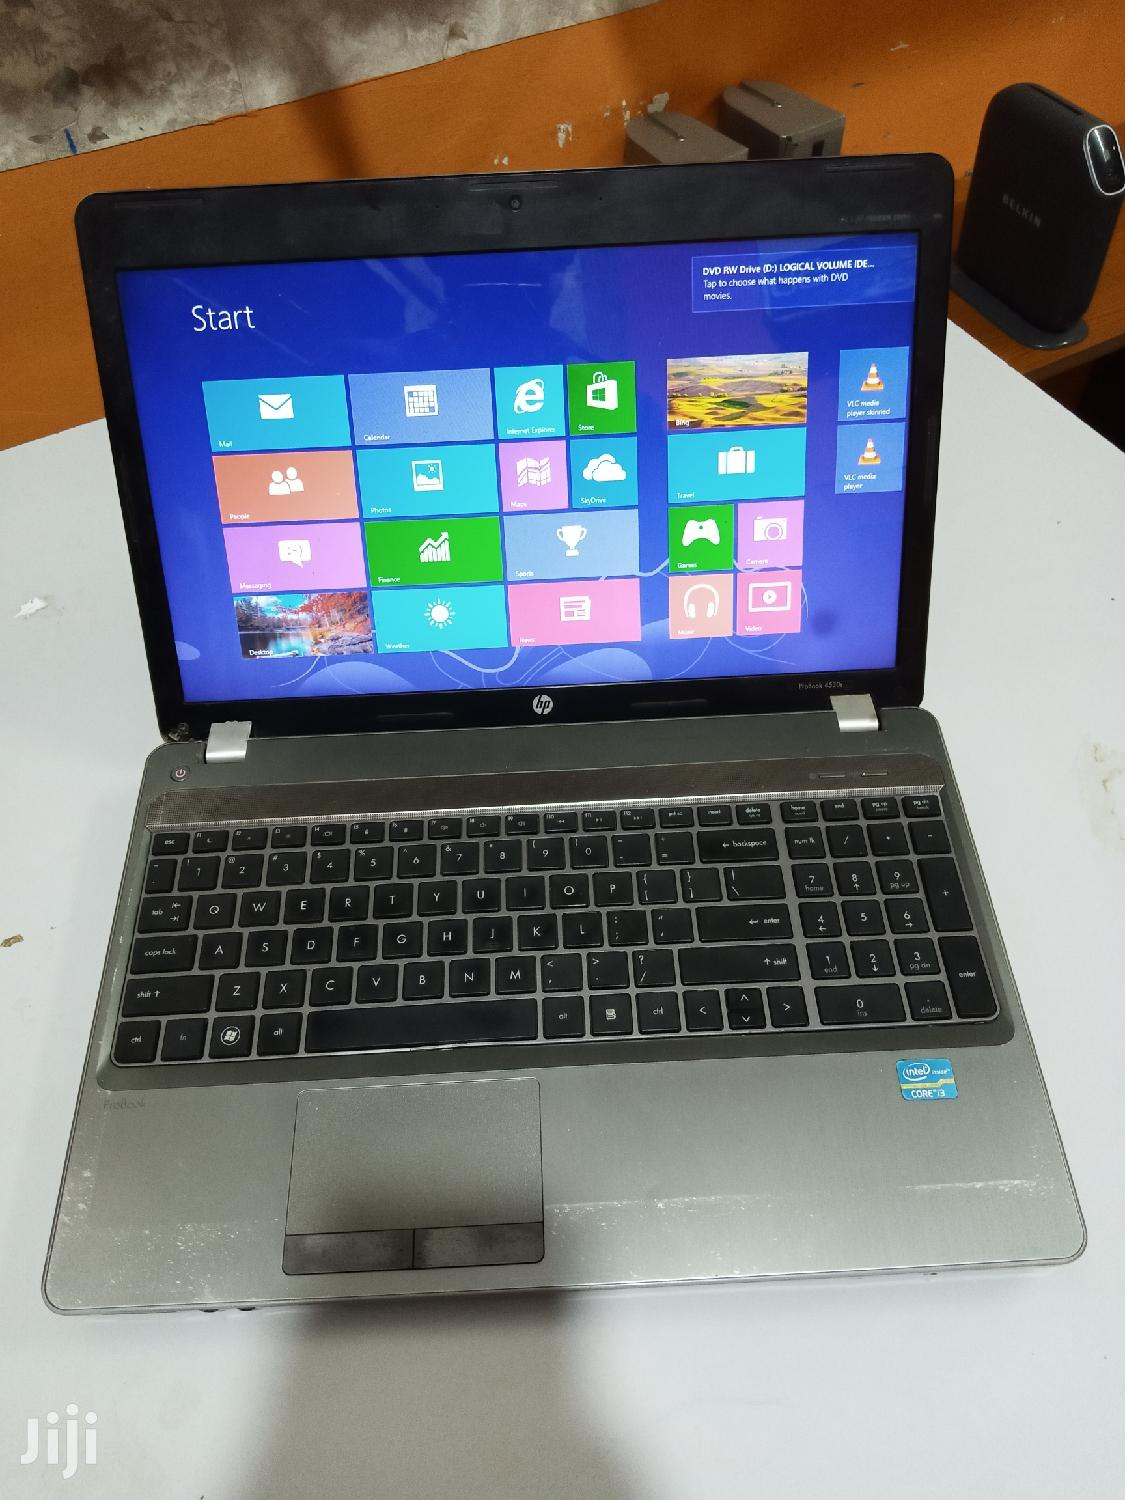 Archive: Laptop HP ProBook 430 G4 4GB Intel Core i3 HDD 128GB